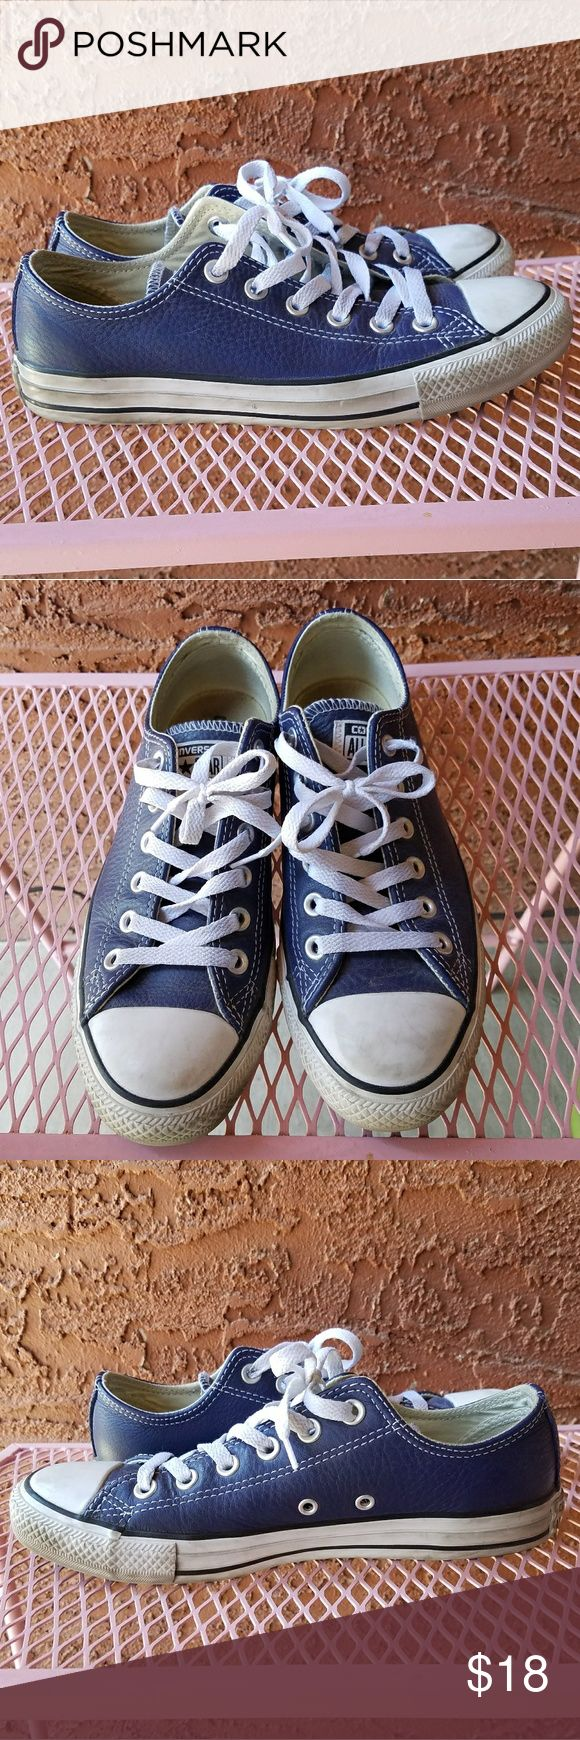 """Faux Leather Low-top Converse Navy blue faux leather converse are in good used condition. Lightly worn. No major flaws, just some wear and dirt from normal wear. Can be easily cleaned if you don't like the """"broke in"""" look. Women's size 8, men's size 6. Converse Shoes Sneakers"""